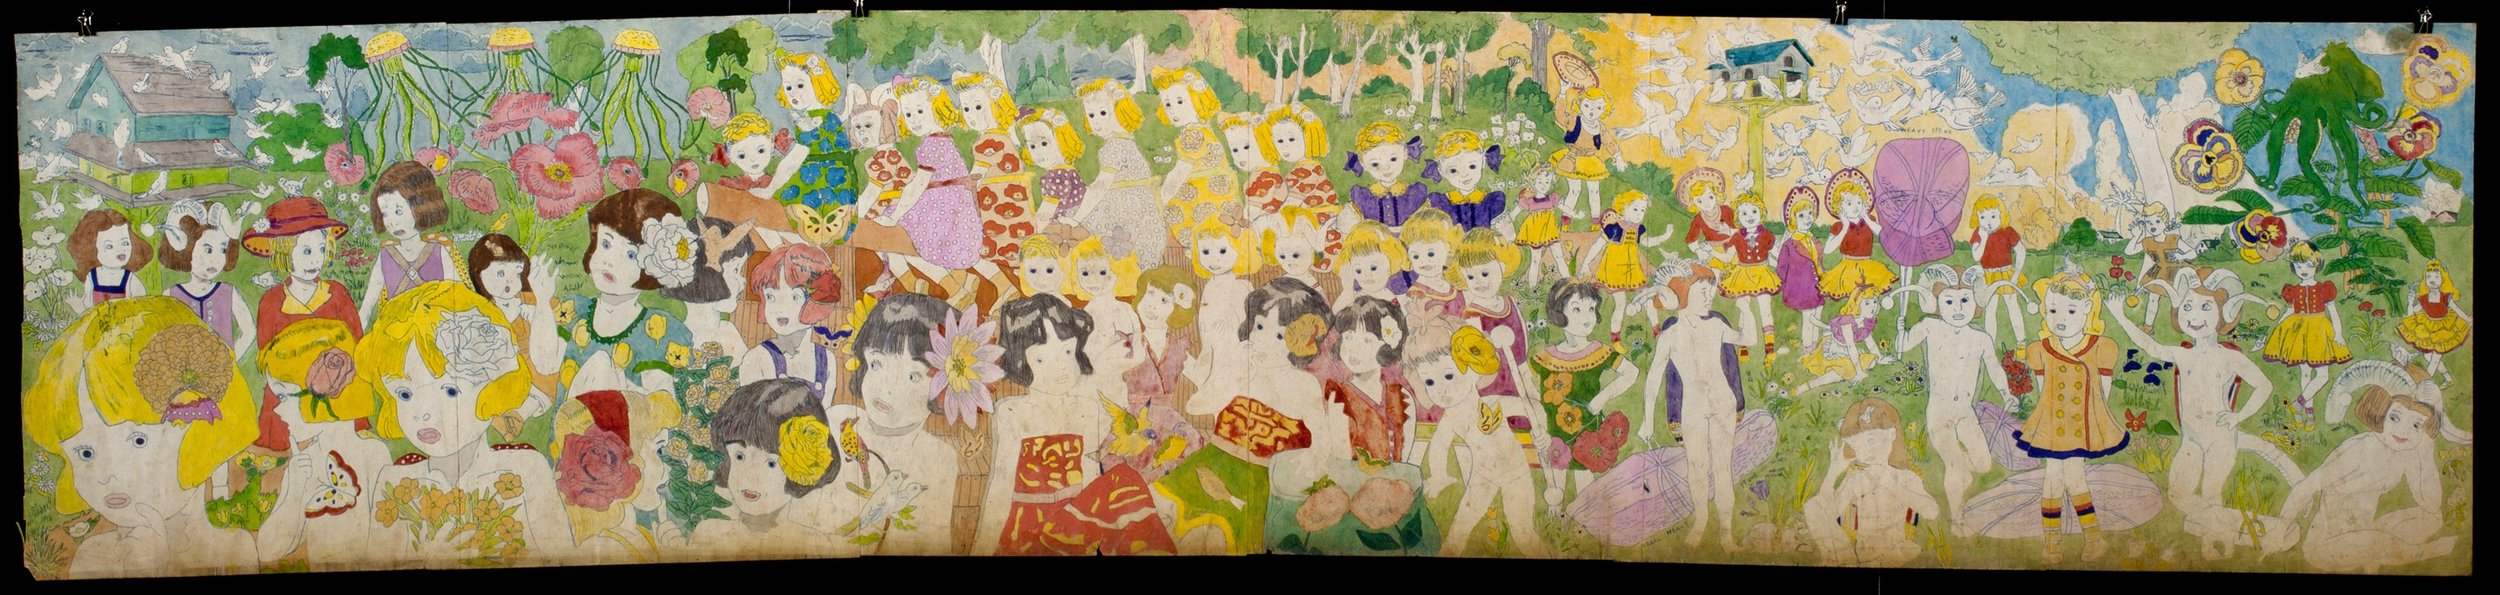 Henry Darger (American, 1892-1973). Untitled, mid-20th century. Watercolor, pencil, and carbon transfer on paper, 24 x 110 in. Collection of Robert A. Roth